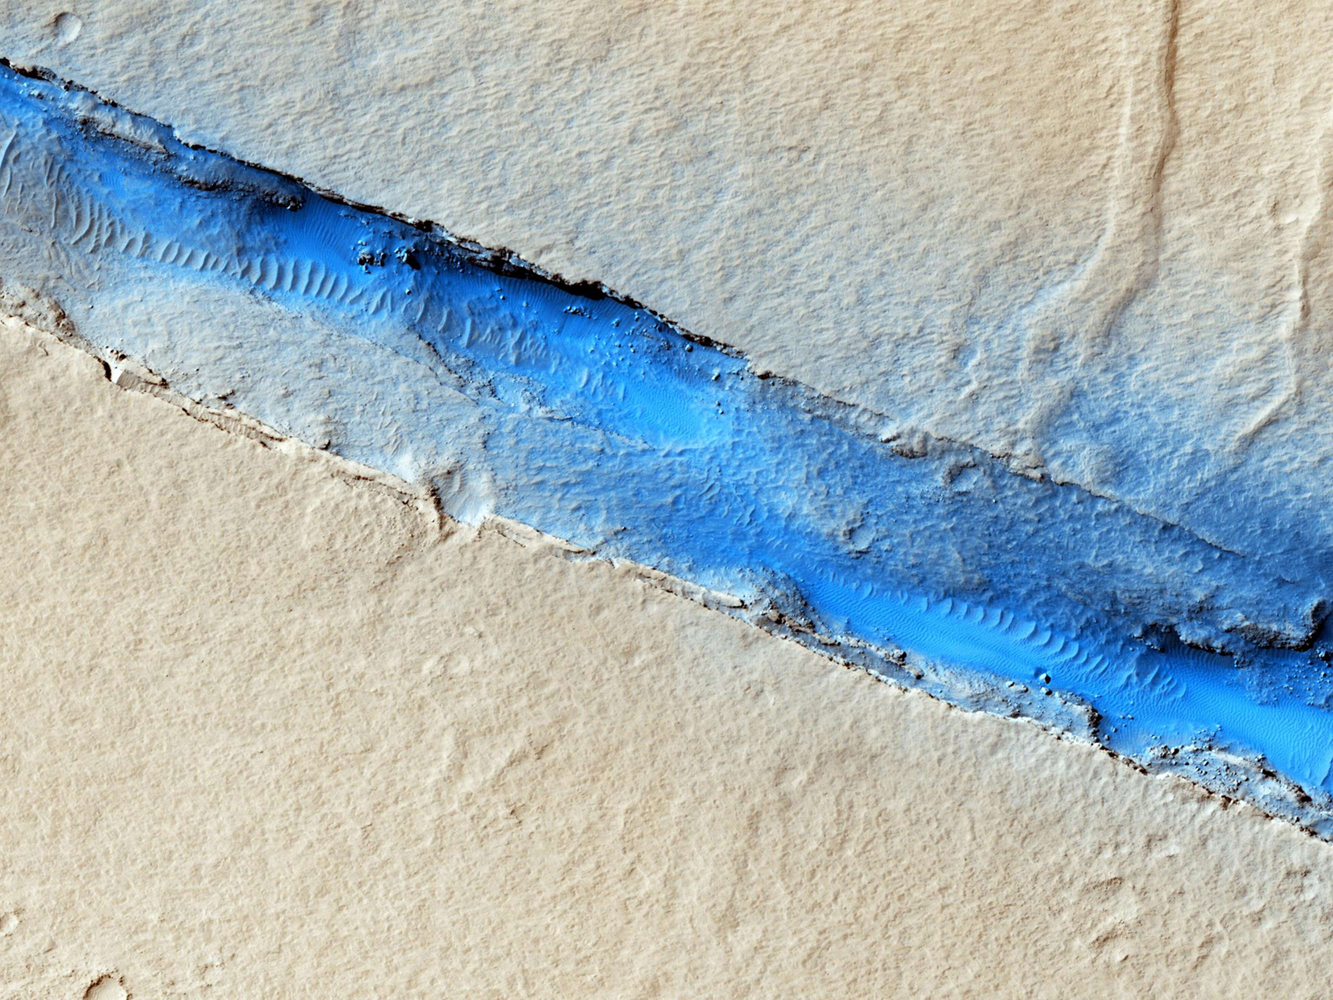 A fissure near Mars's Cerberus Fossae is captured in this image released on Jan. 15, 2014. The picture was taken by the Mars Reconnaissance Orbiter.